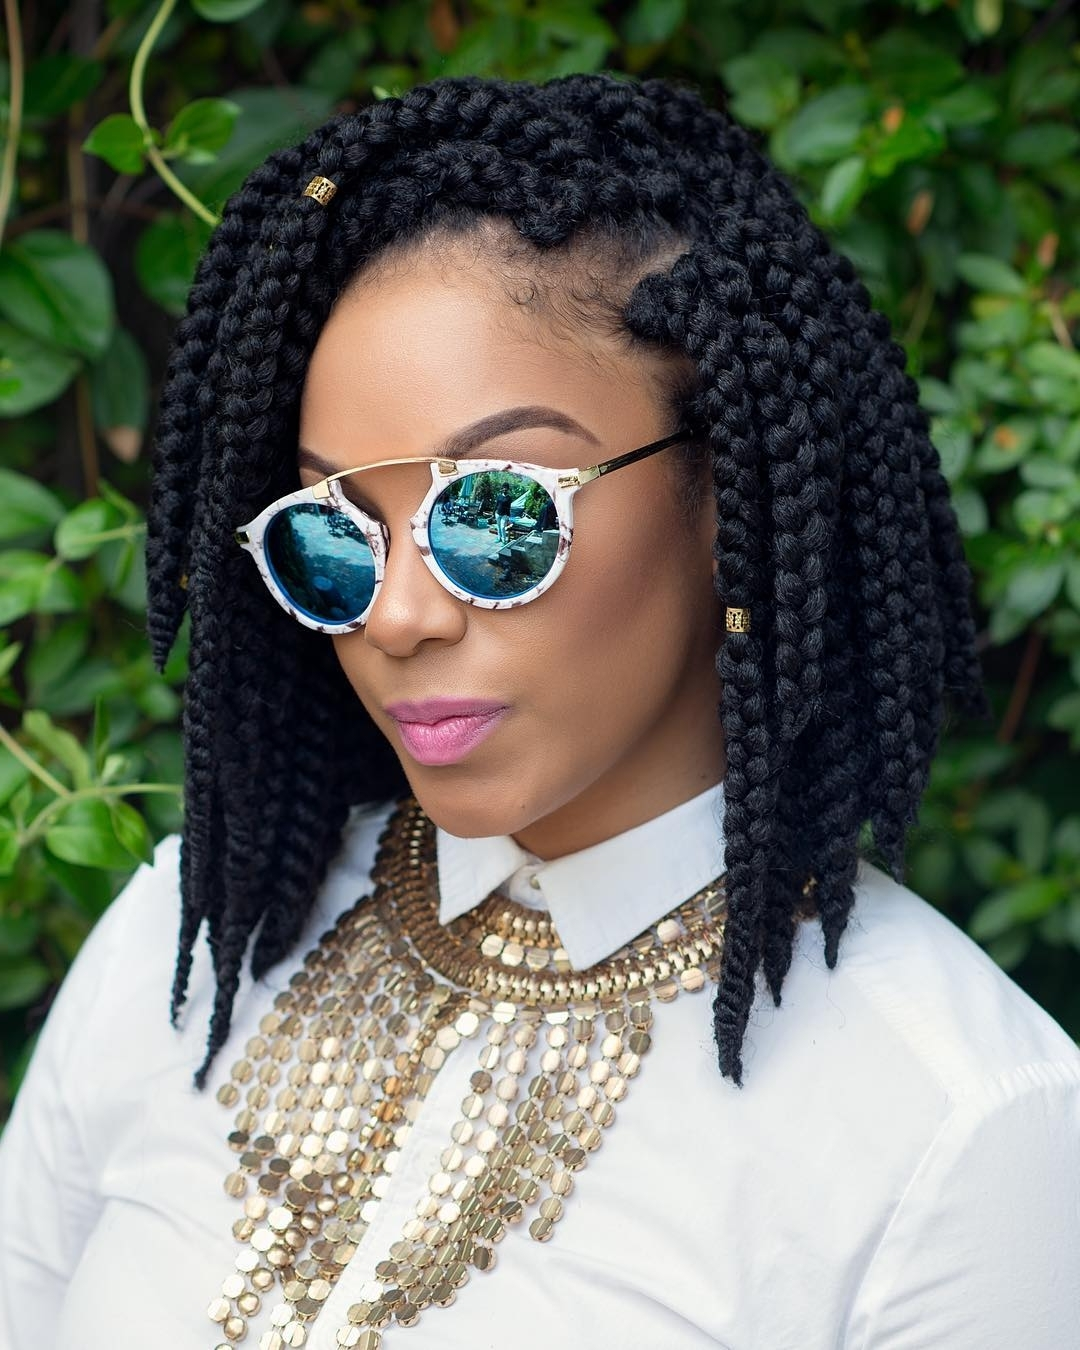 80 Trendy African Braids Hairstyles – Embrace The Braiding Art Regarding Well Known African Braided Hairstyles (View 3 of 15)